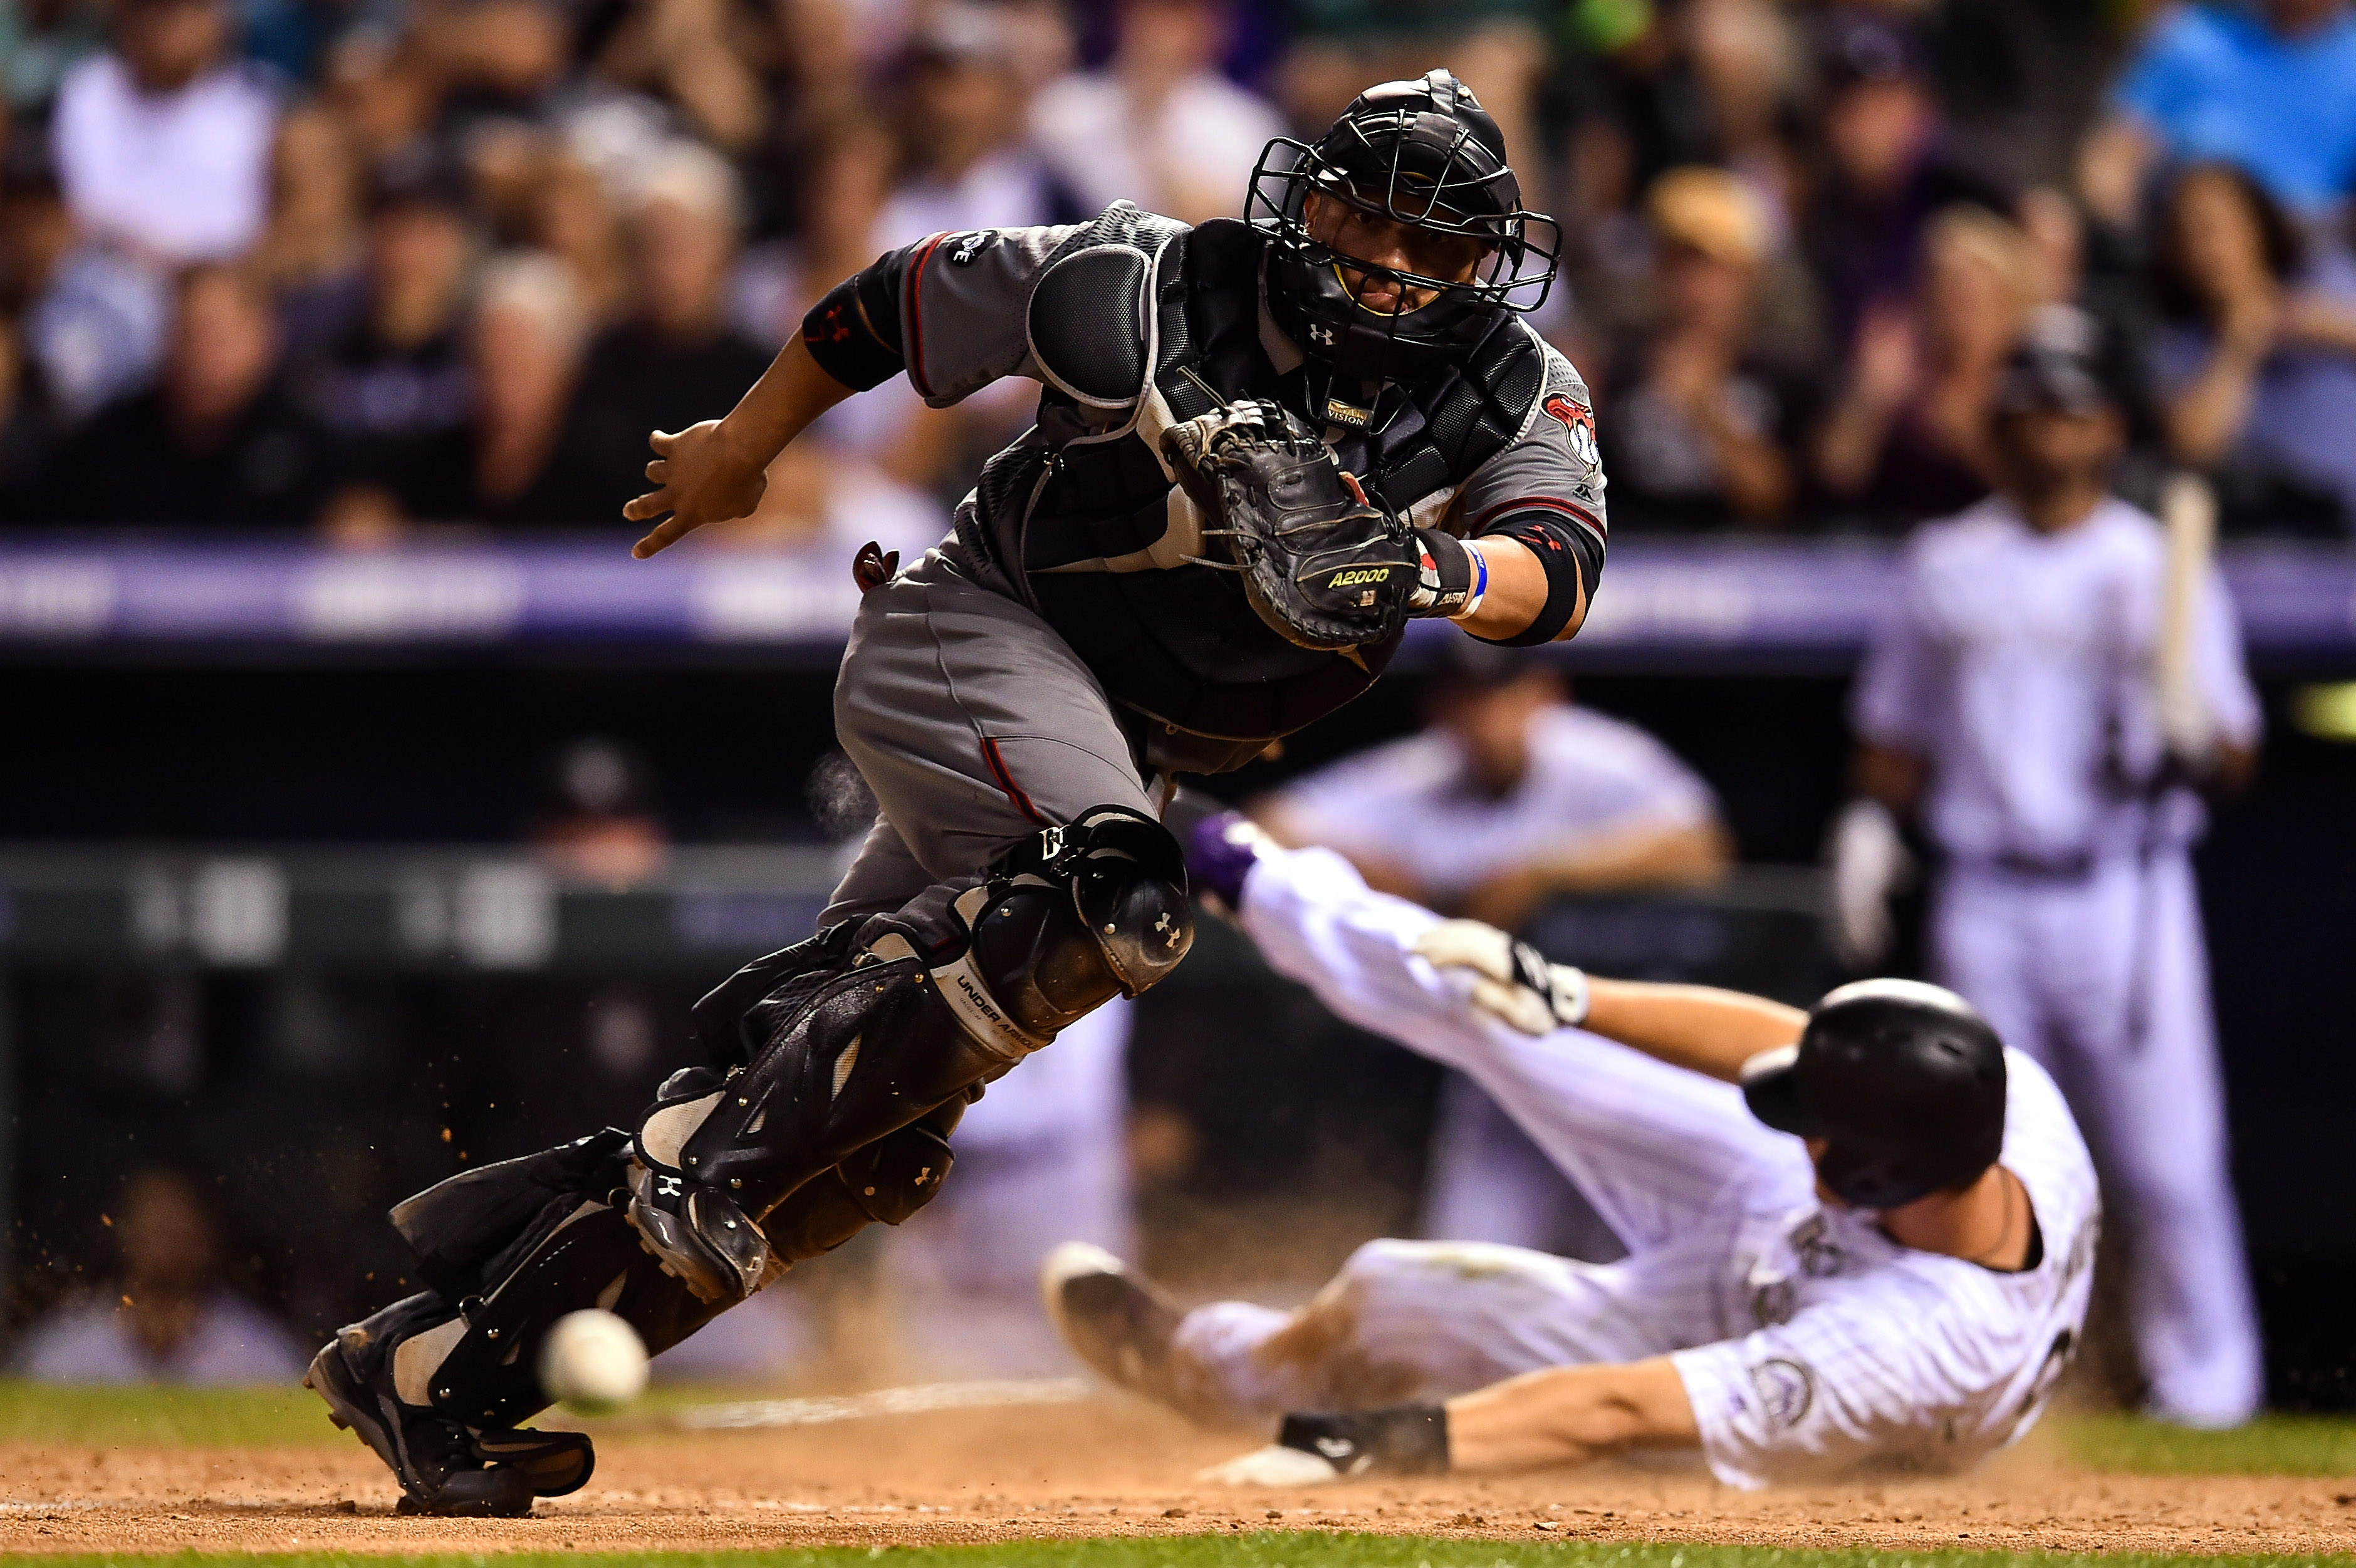 Welington Castillo #7 of the Arizona Diamondbacks moves to field a putout attempt as DJ LeMahieu #9 of the Colorado Rockies slides safely across home plate to score in the sixth inning of a game at Coors Field on September 3, 2016 in Denver, Colorado.  (Photo by Dustin Bradford/Getty Images)